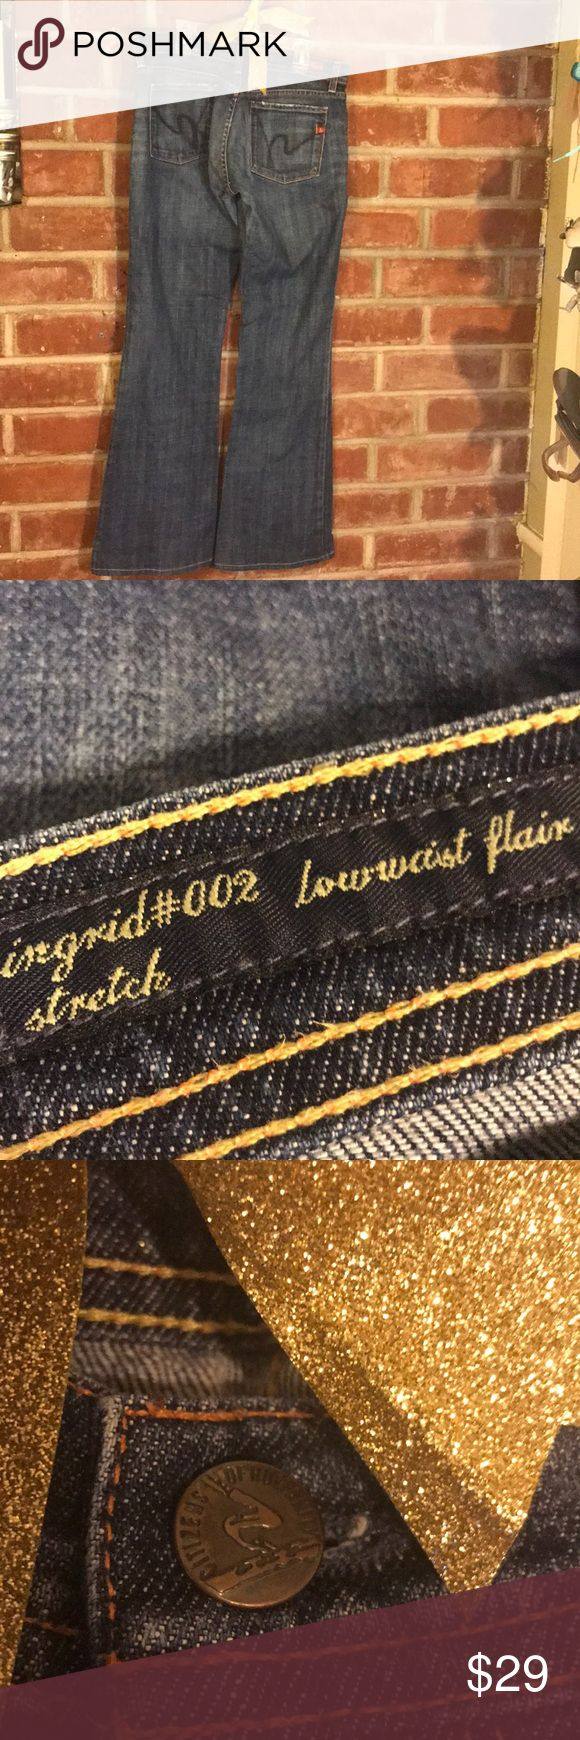 Citizens Of Humanity Flair Jeans Like New! Citizens of Humanity Flair Jeans   No tears, rips, or fraying. Citizens Of Humanity Jeans Flare & Wide Leg